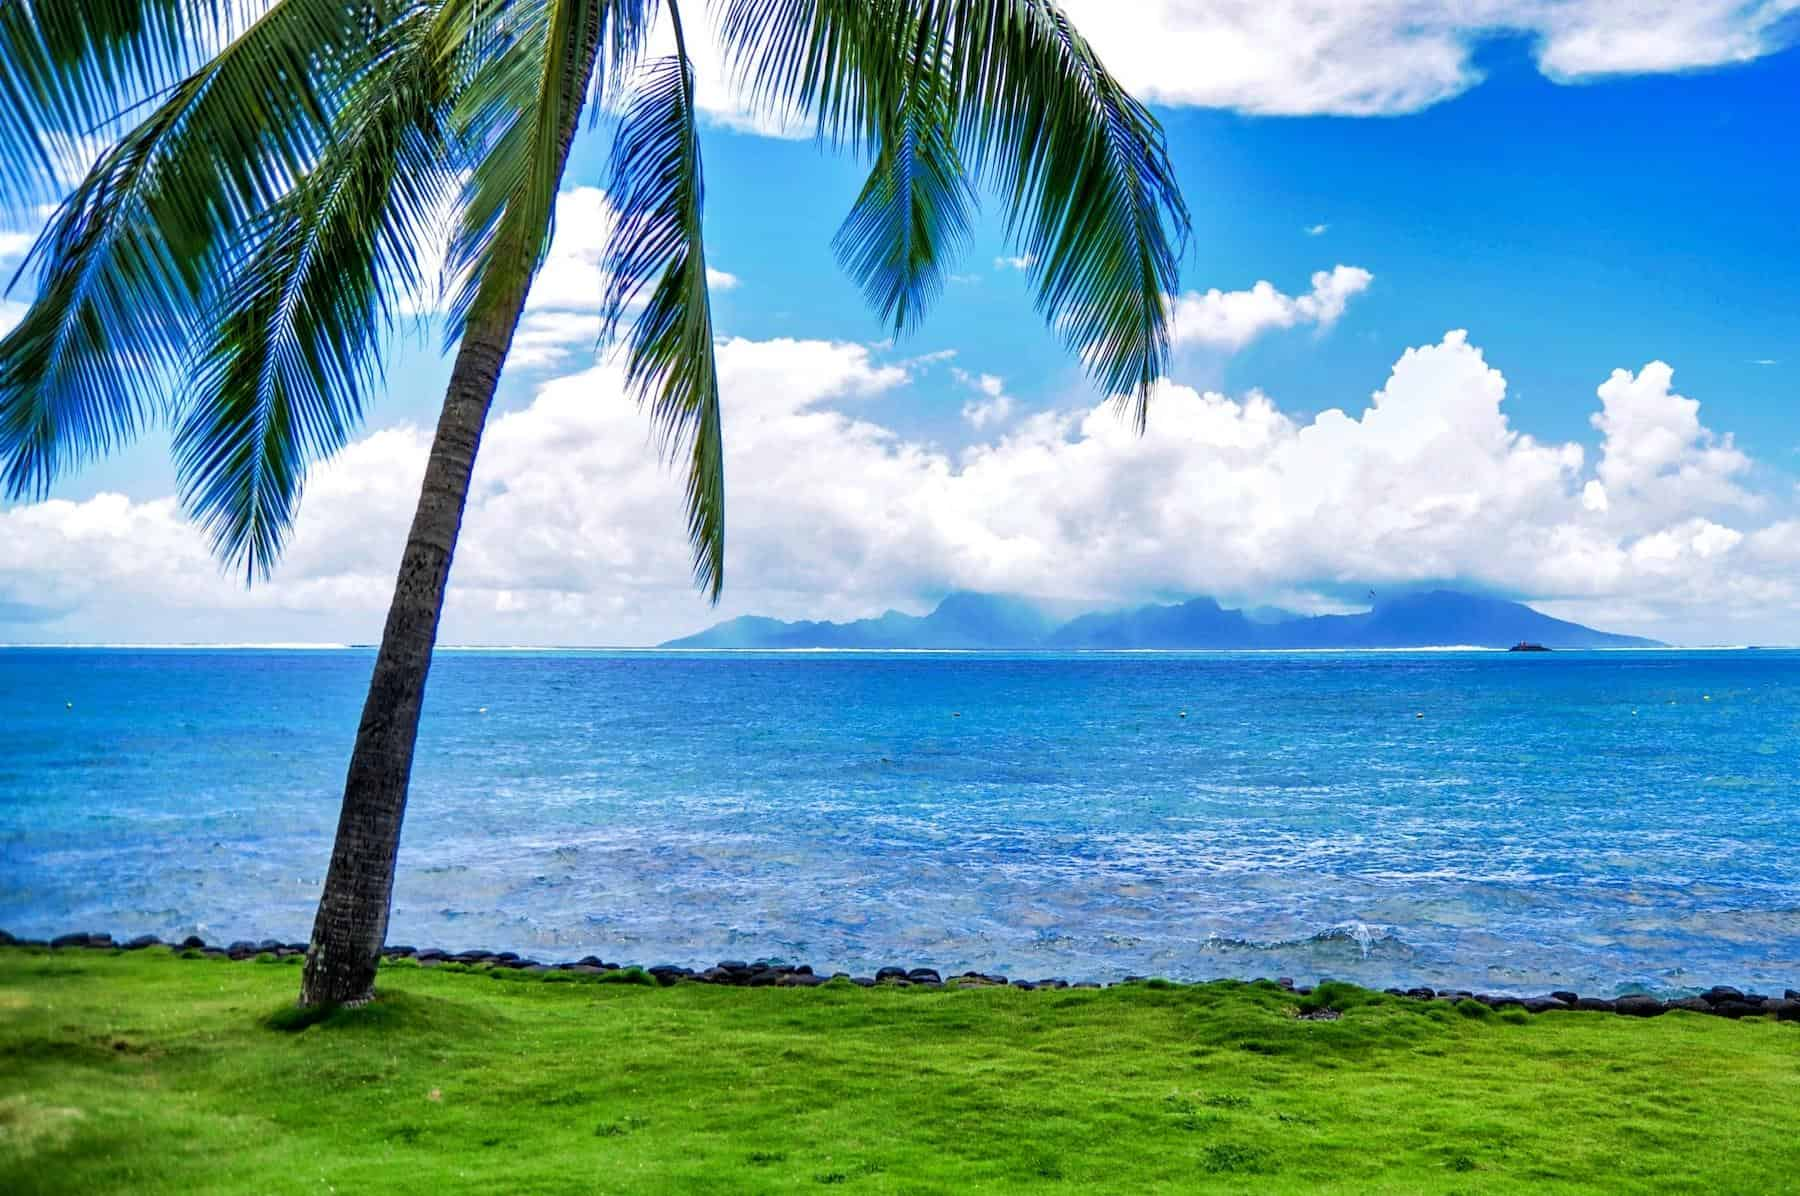 Tahiti may be the closest you'll ever get to paradise without dying first.